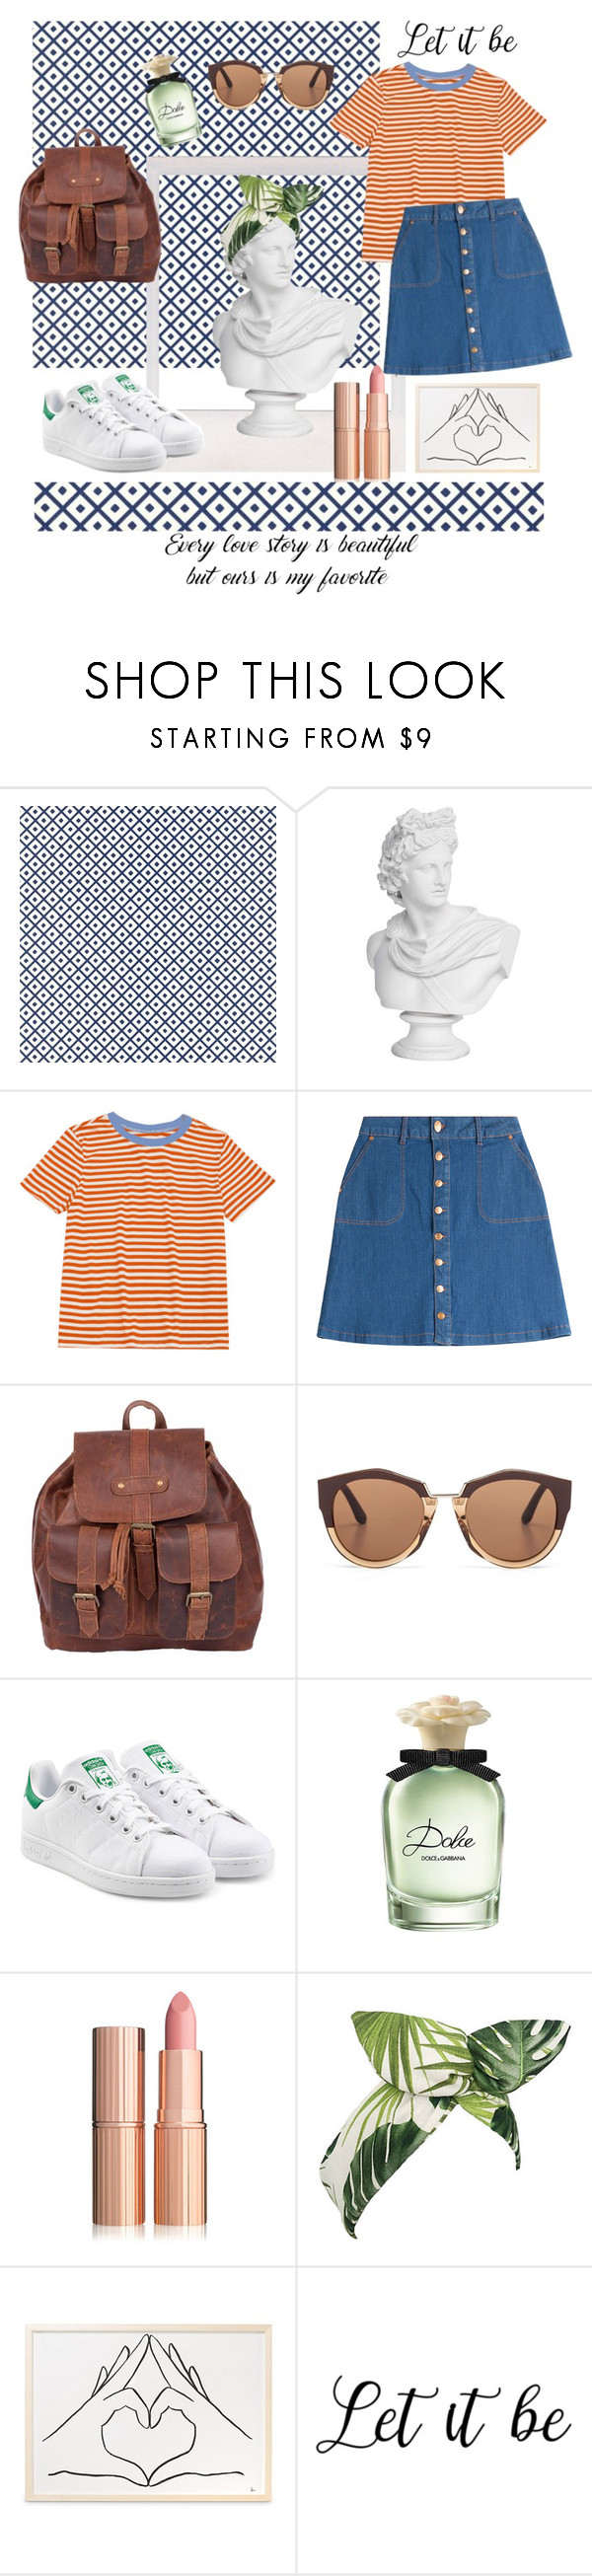 """""""🌼"""" by ecemaydgn ❤ liked on Polyvore featuring HUGO, Mahi, Marni, adidas Originals, Dolce&Gabbana and Lulu in the Sky"""